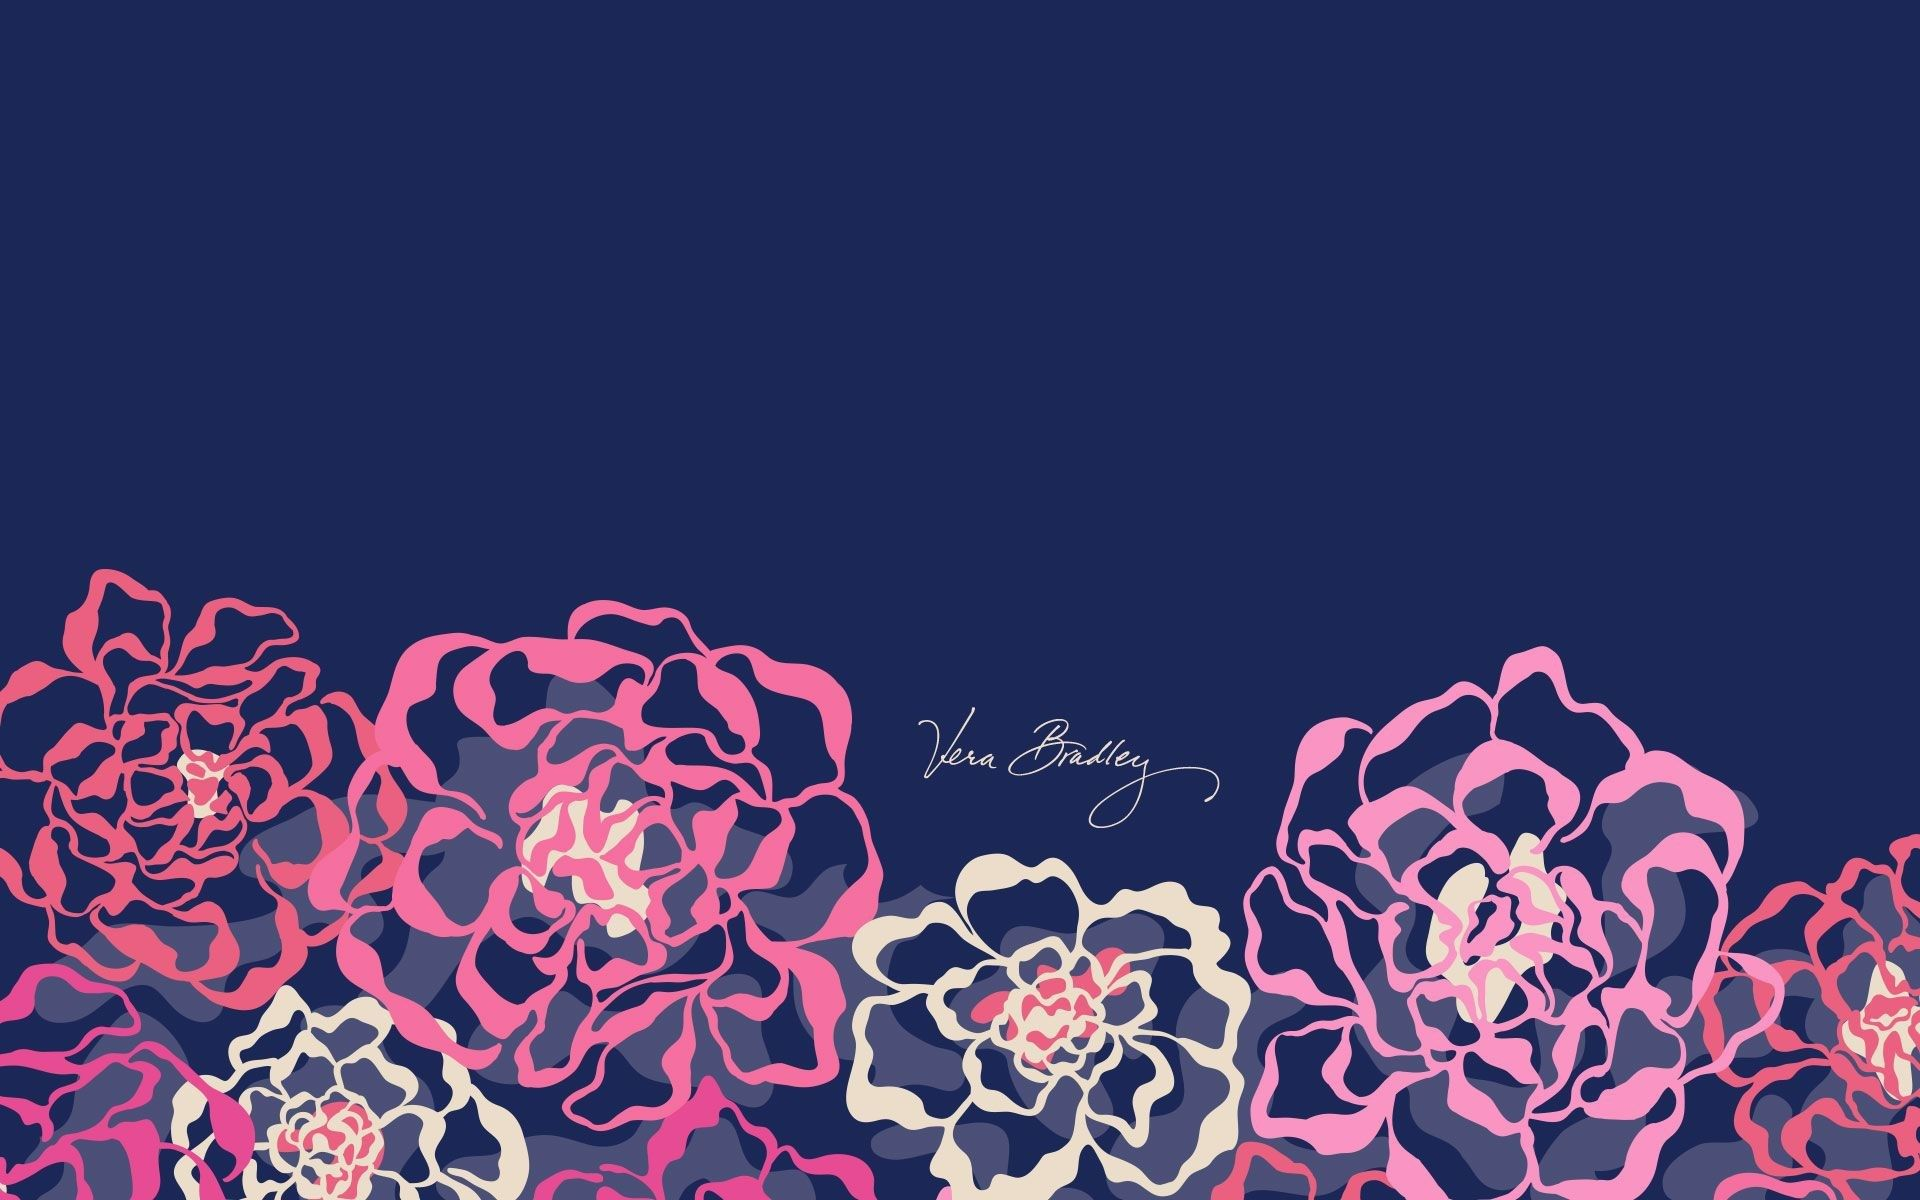 vera bradley backgrounds for widescreen free